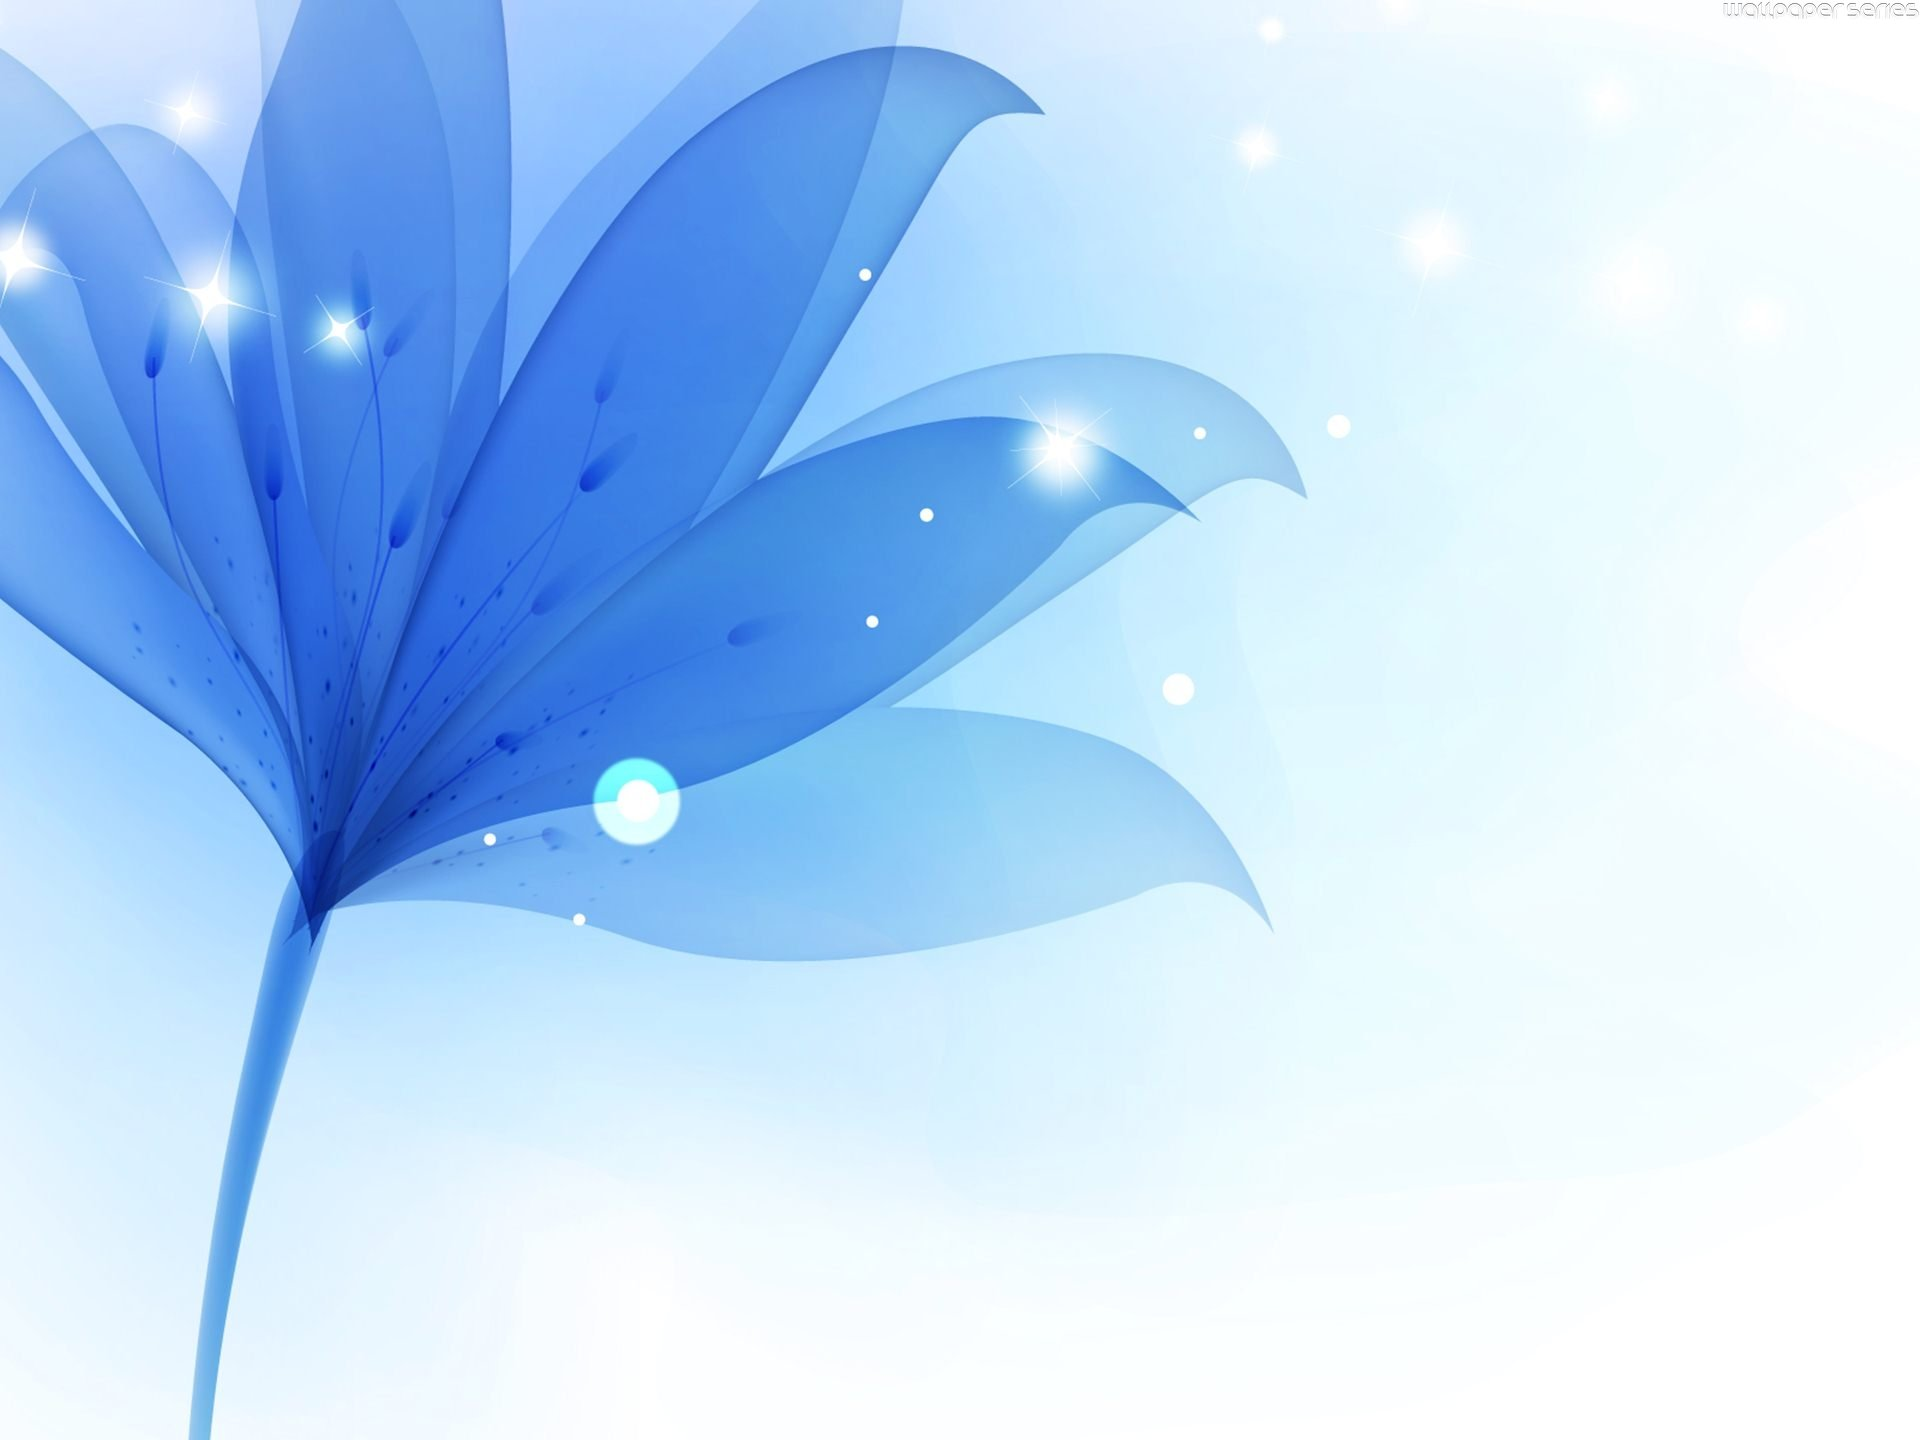 blue-flower-powerpoint-backgrounds-hd-free-wallpaper, Powerpoint templates